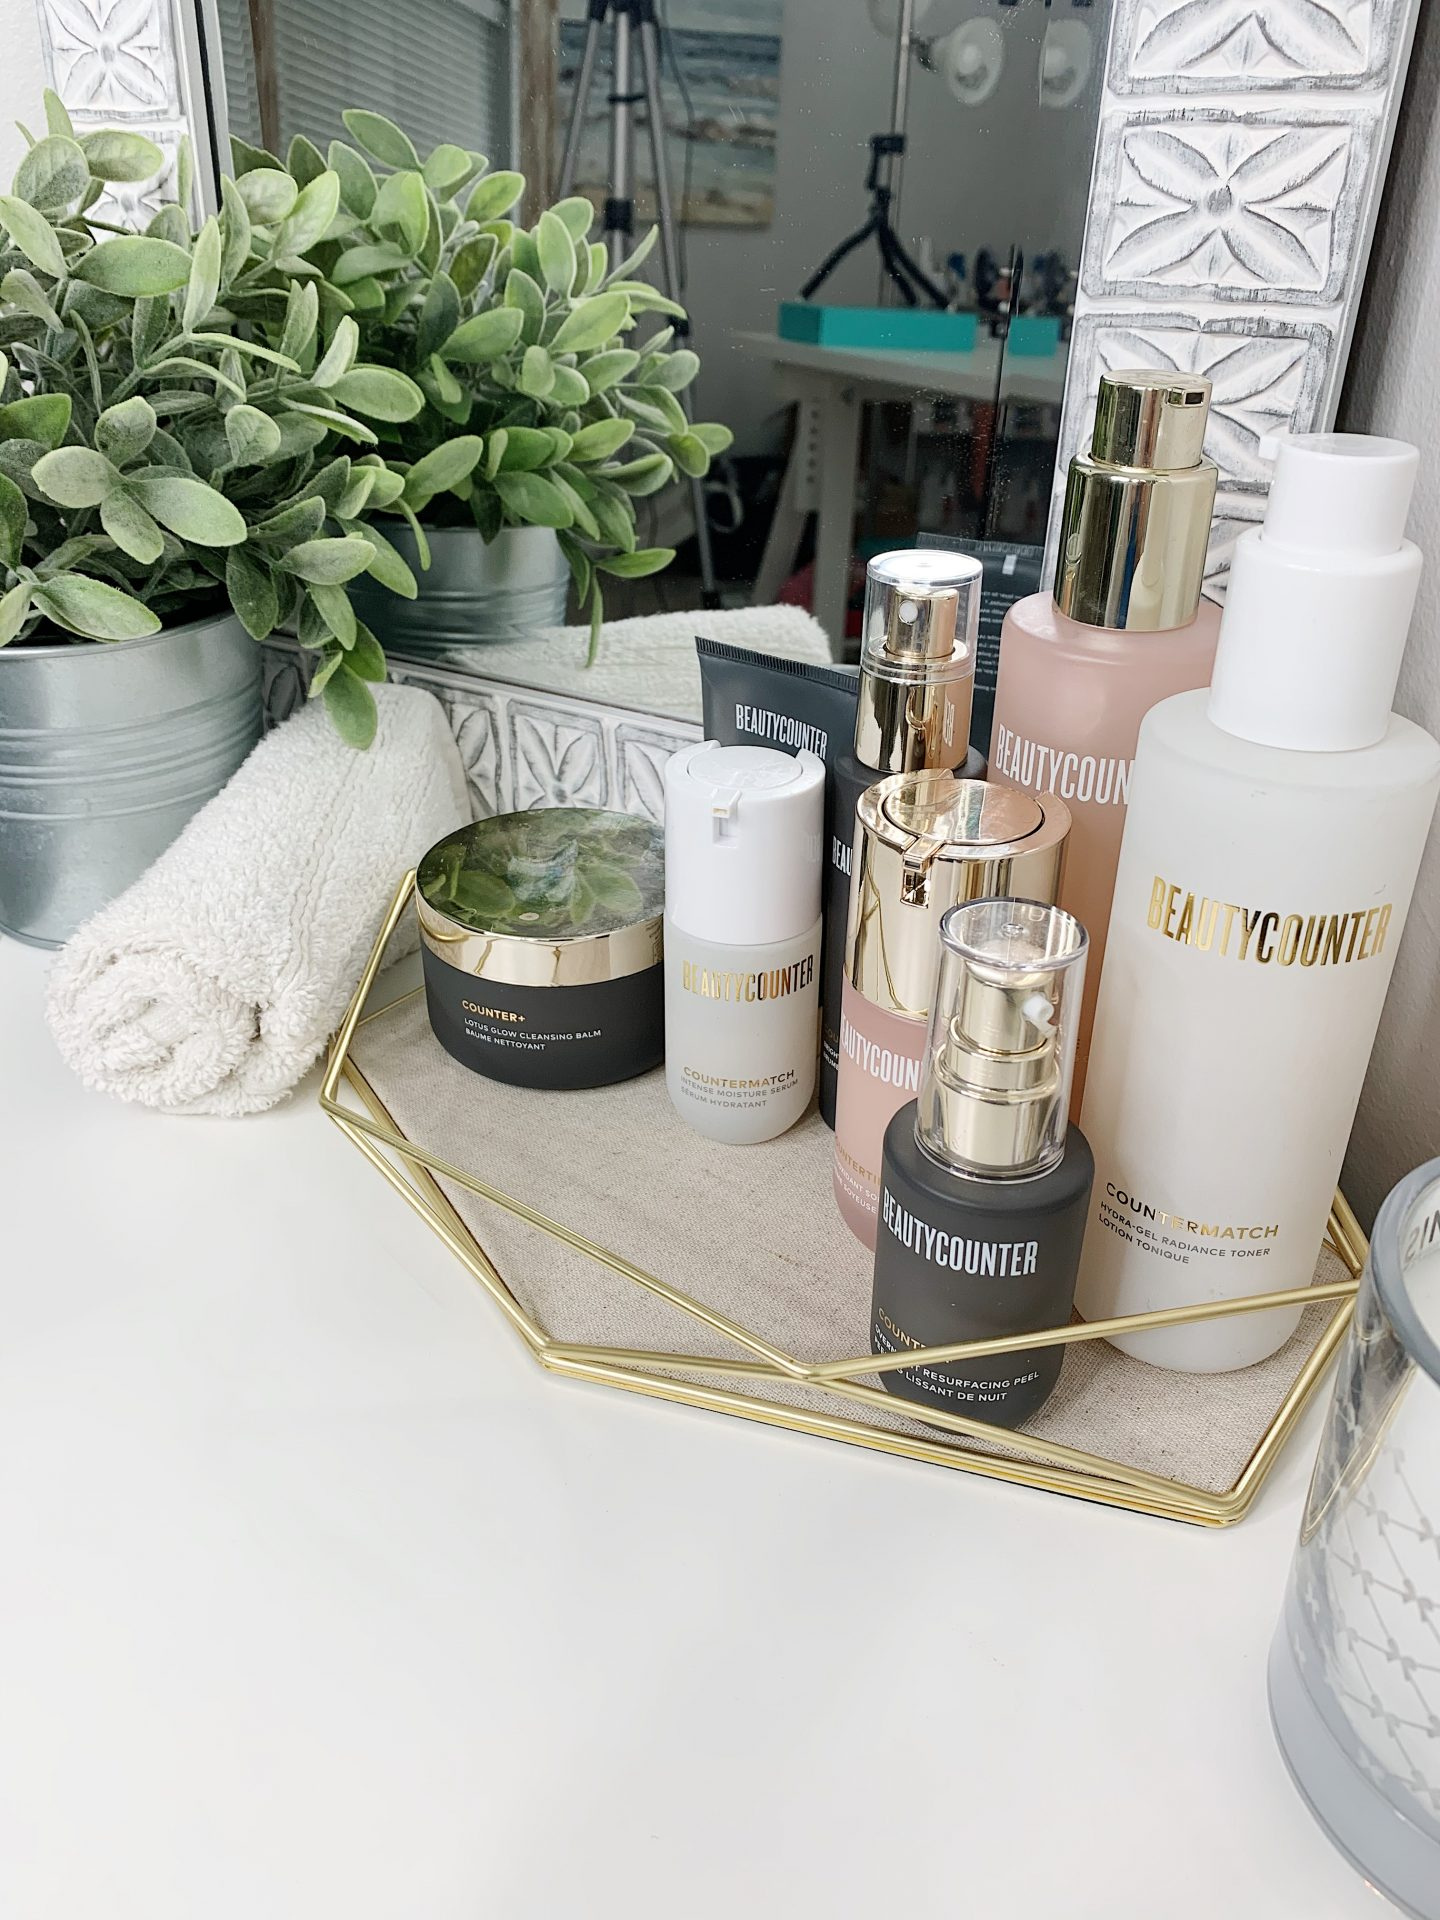 My 5 Favorite Beautycounter Skin Care Products | Brighter Darling